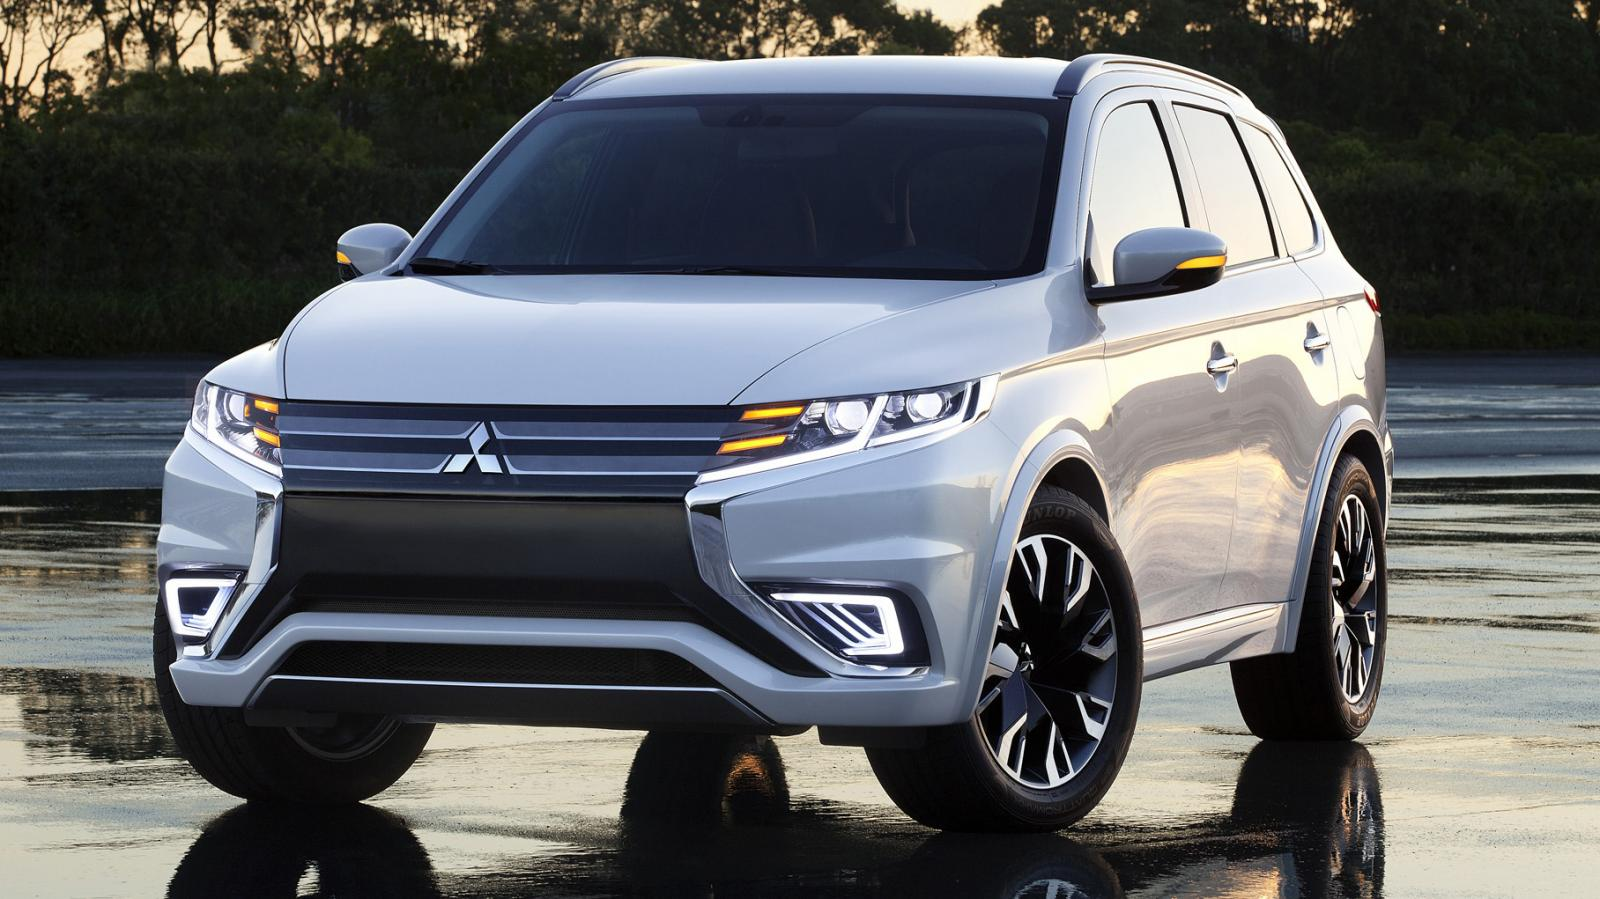 2016 mitsubishi outlander plug in hybrid revealed at paris motor show